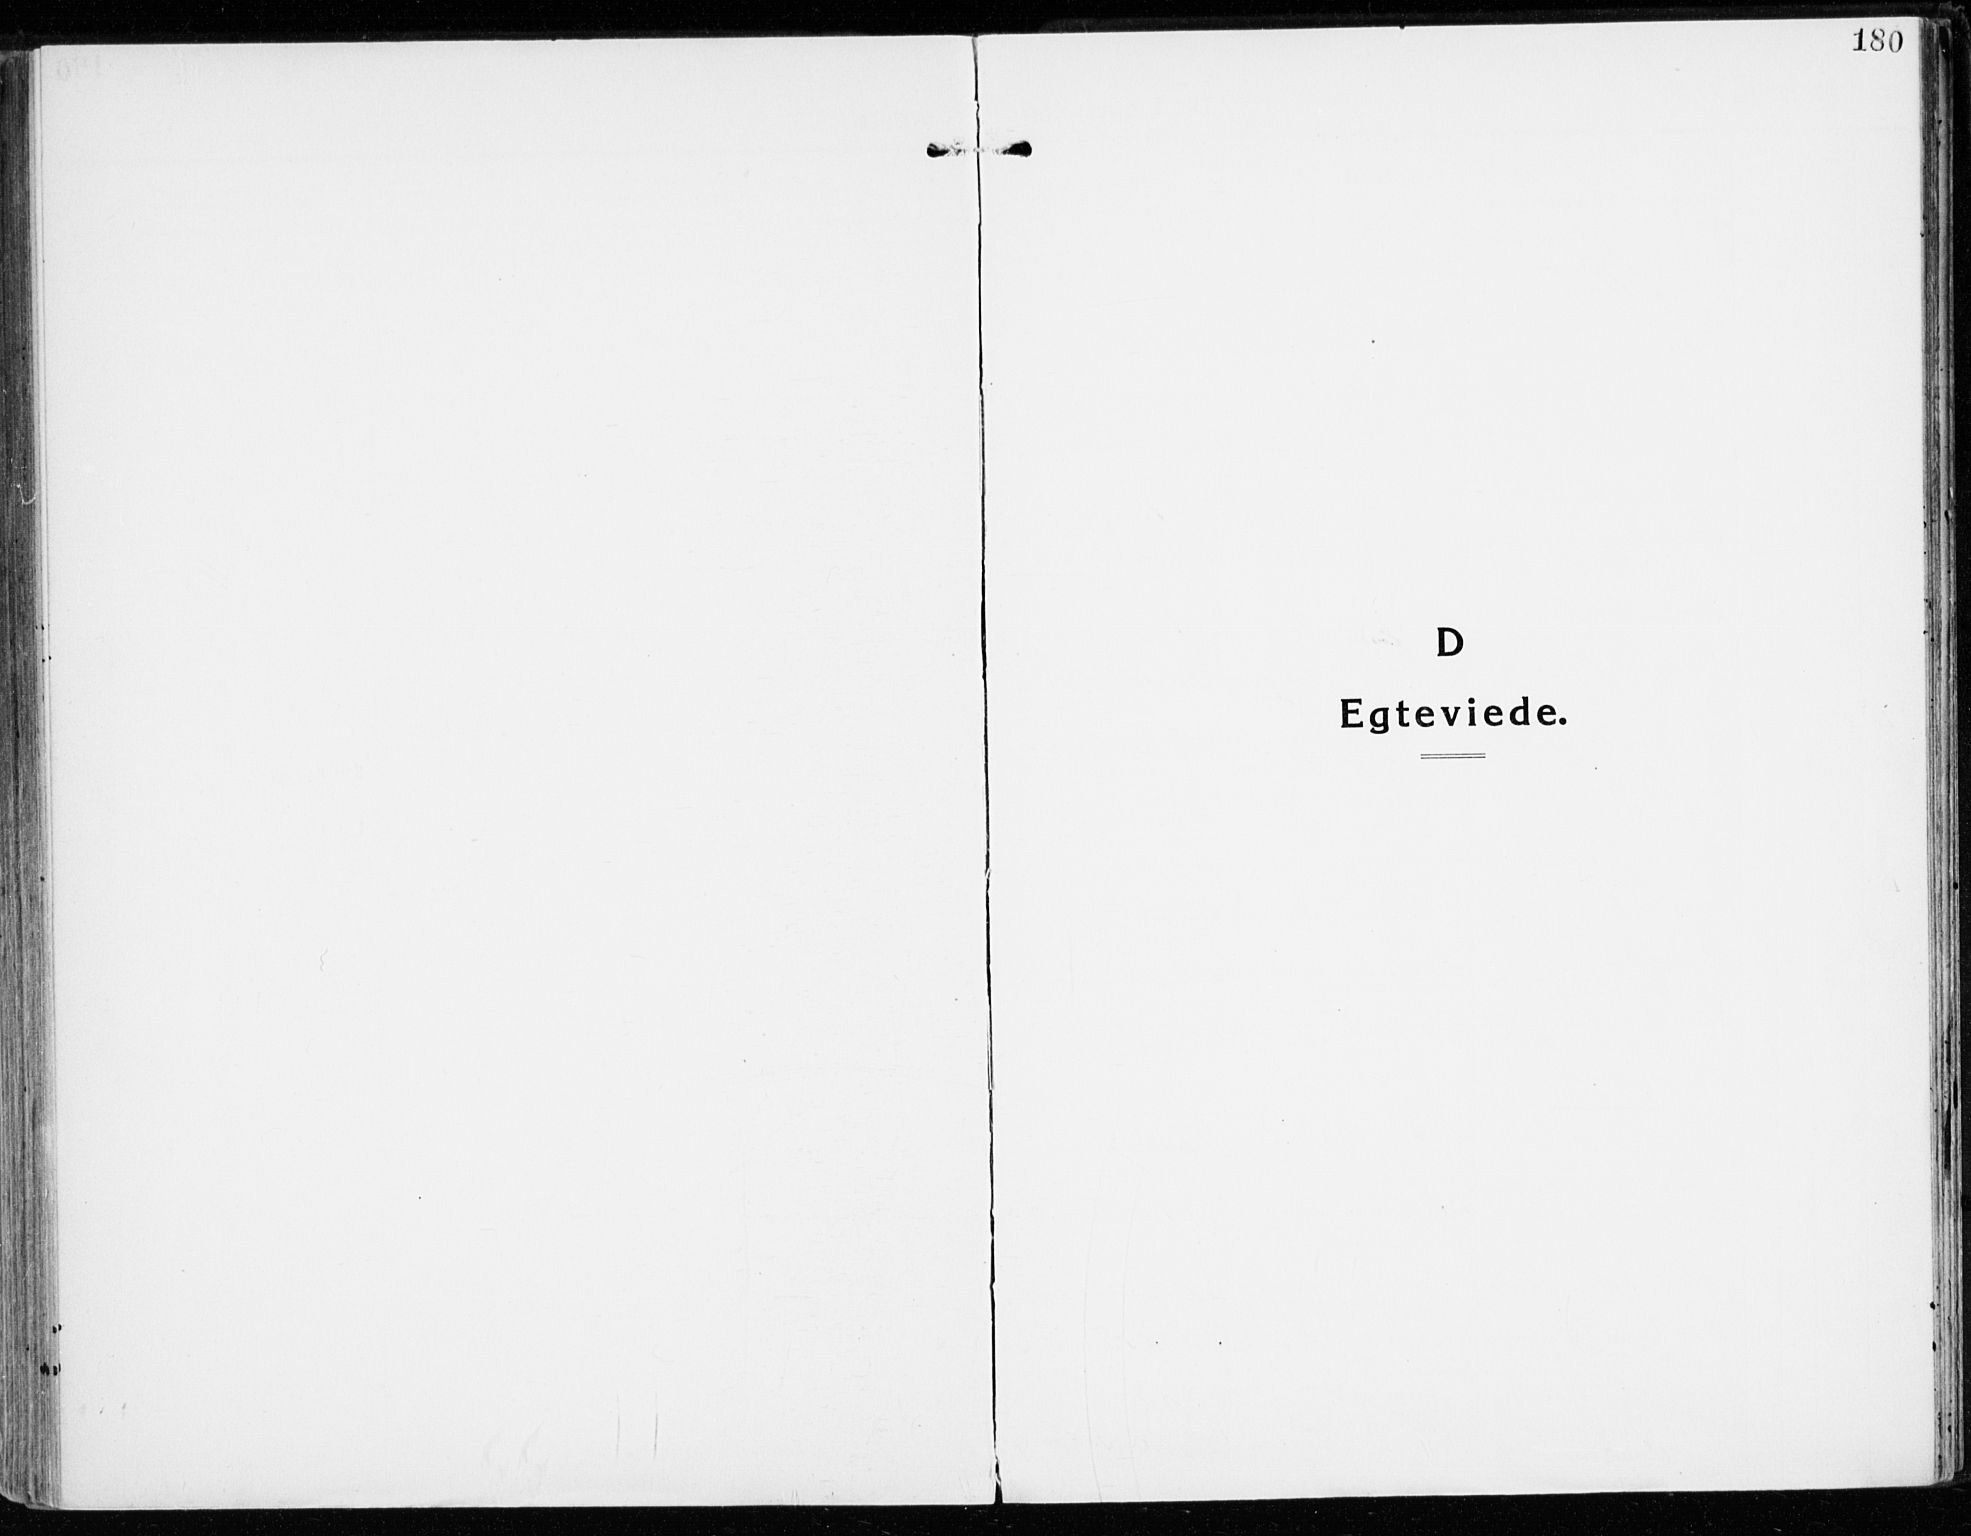 SAH, Stange prestekontor, K/L0025: Parish register (official) no. 25, 1921-1945, p. 180